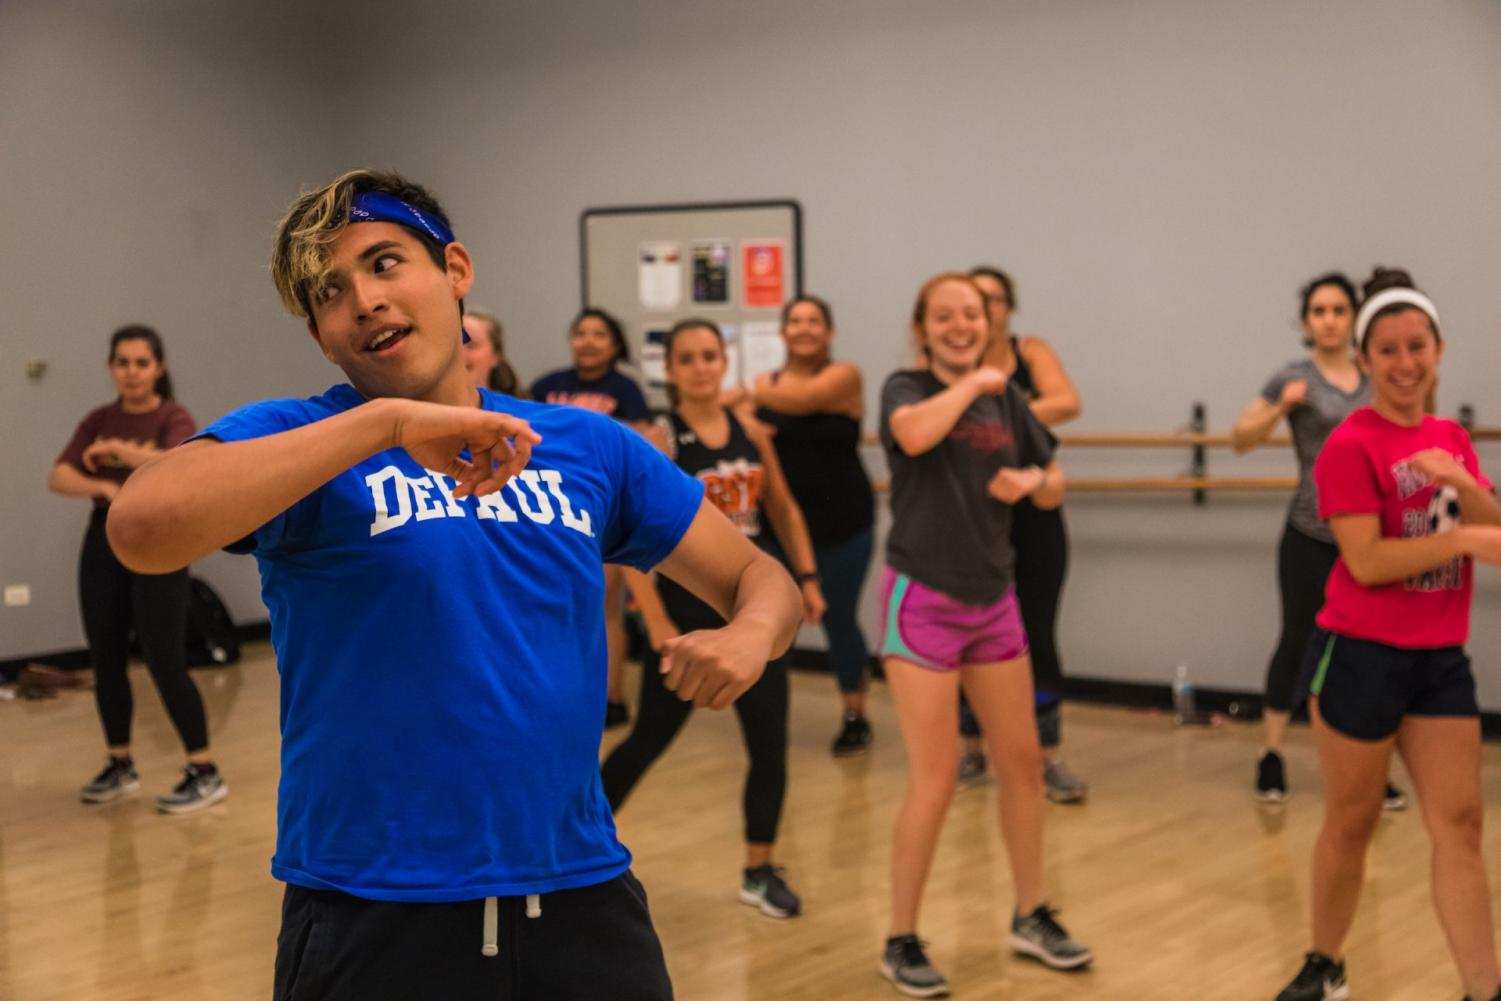 A fitness instructor leads a class in Zumba at the Ray Meyer Fitness Center.